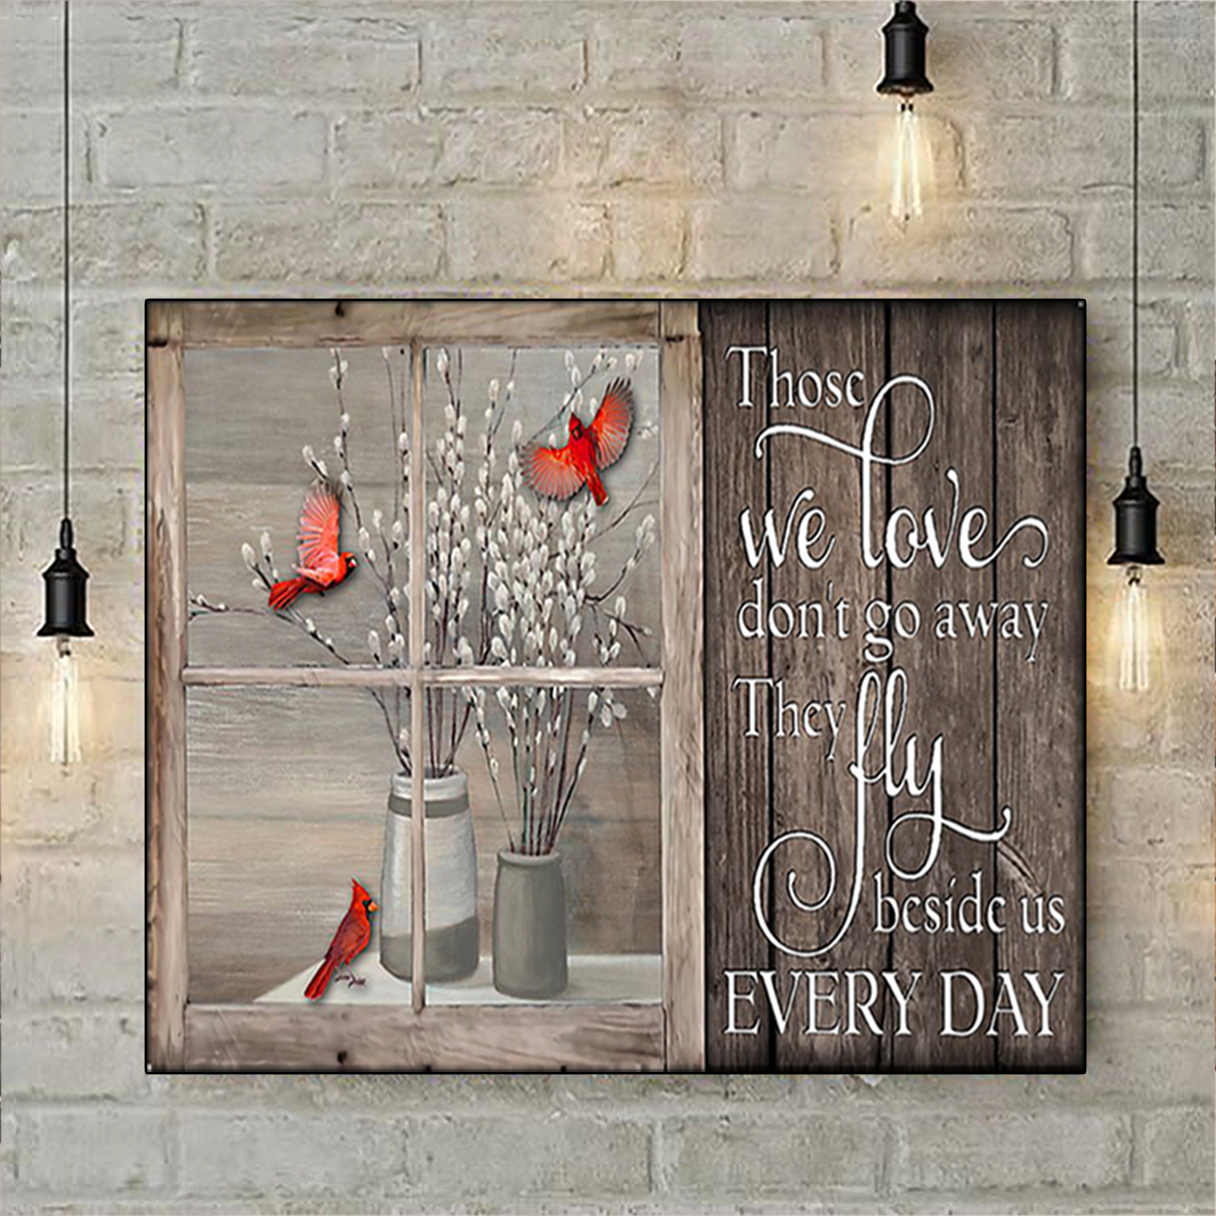 Cardinal window those we love don't go away poster A1